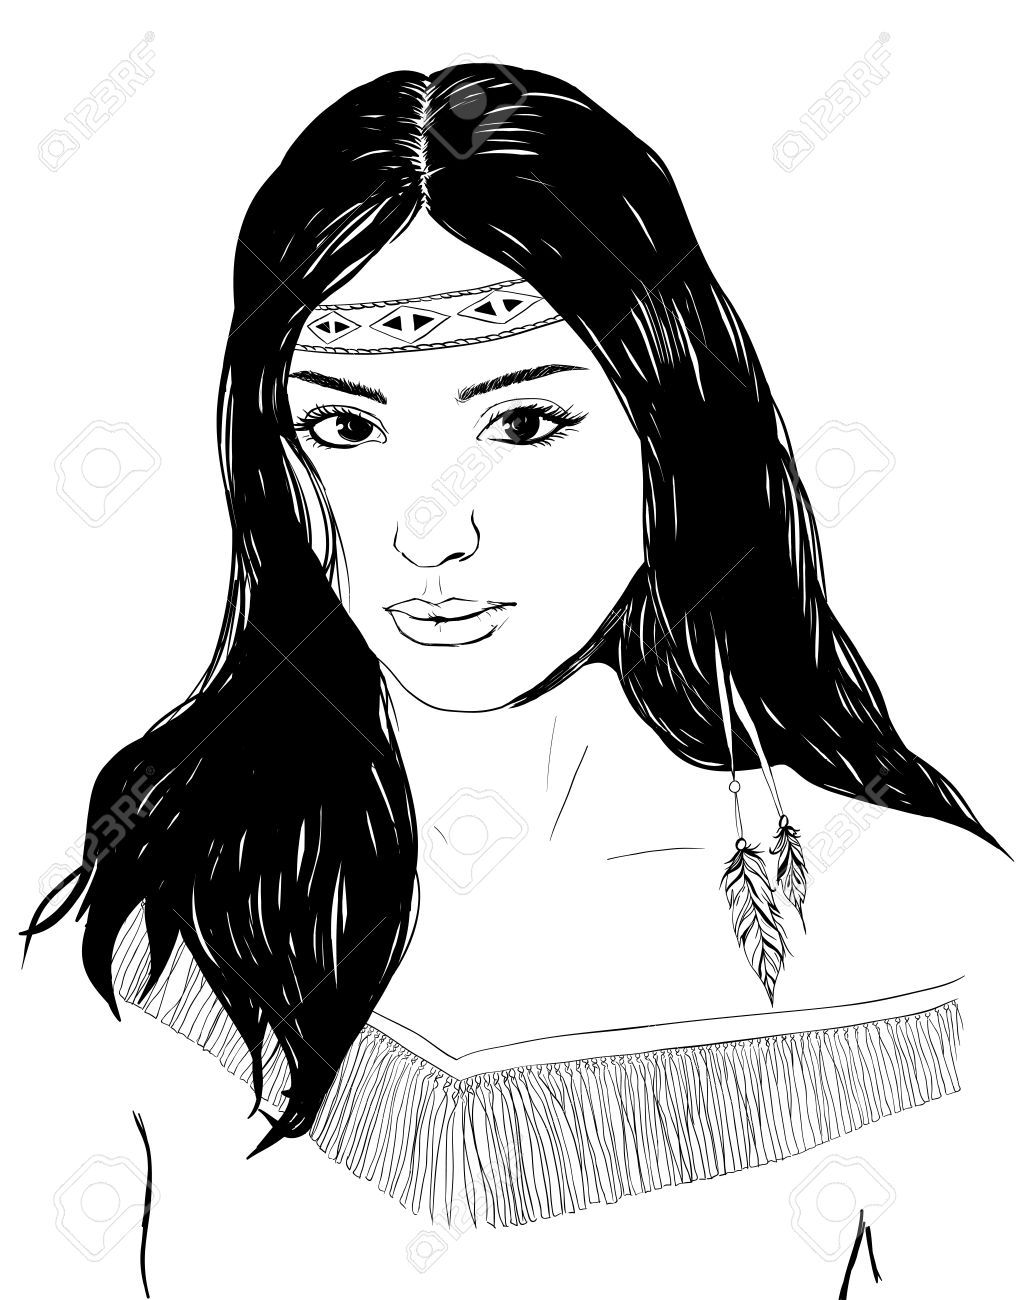 Young american indian woman portrait, hand drawn sketch, cherokee girl with black hair, black white illustration - 57534763